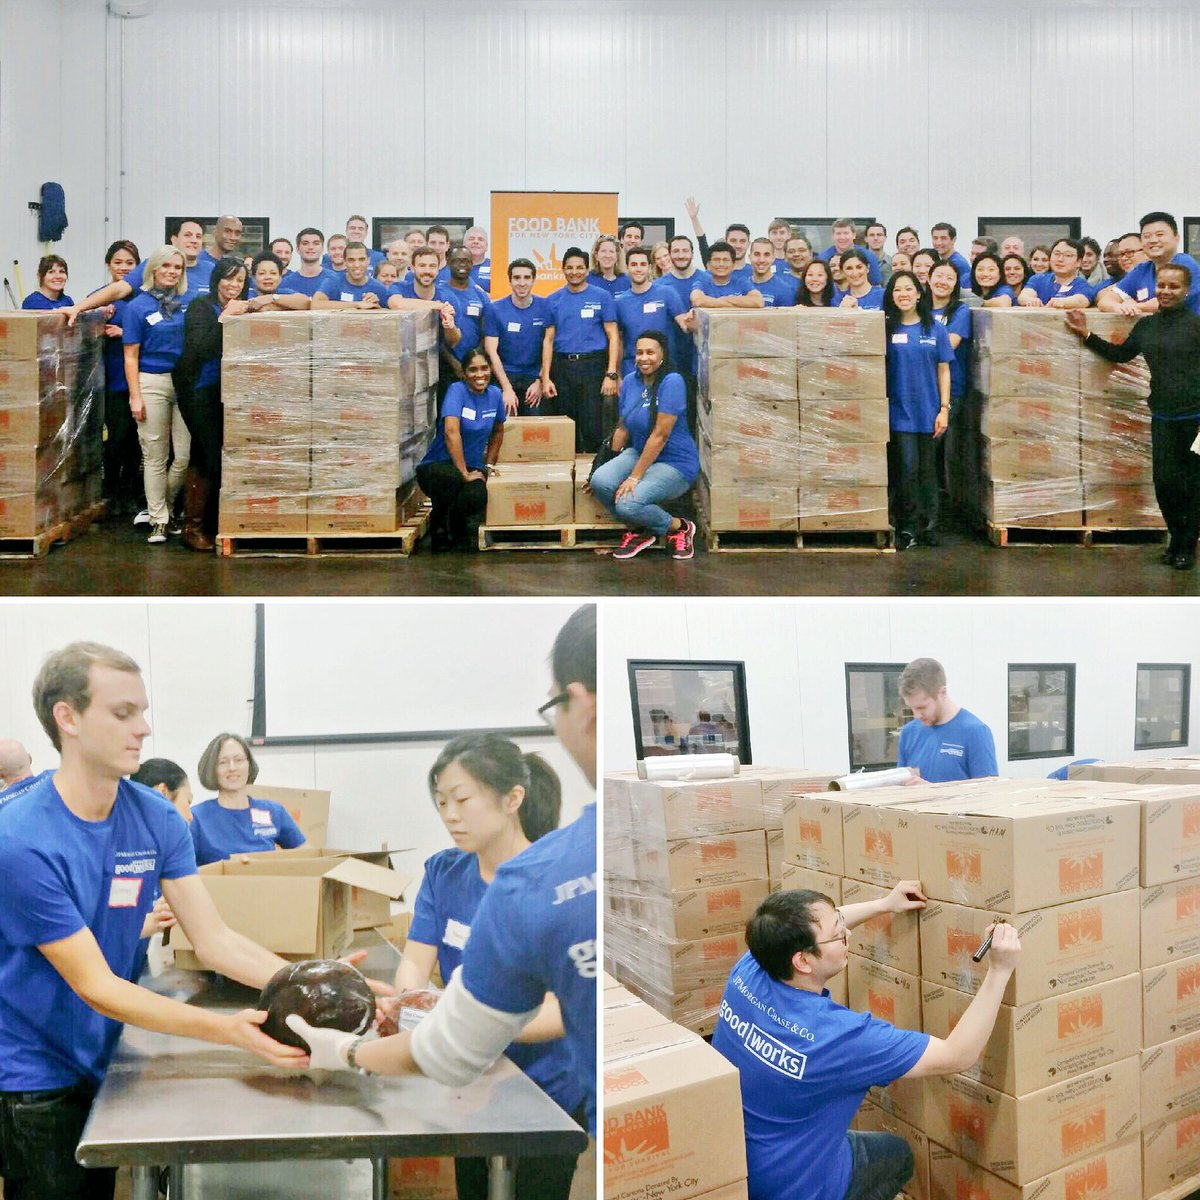 .@jpmorgan employees repacked 26,138 meals for NYers in need. Thank you for helping us #fighthunger! https://t.co/n2GMoLuybf